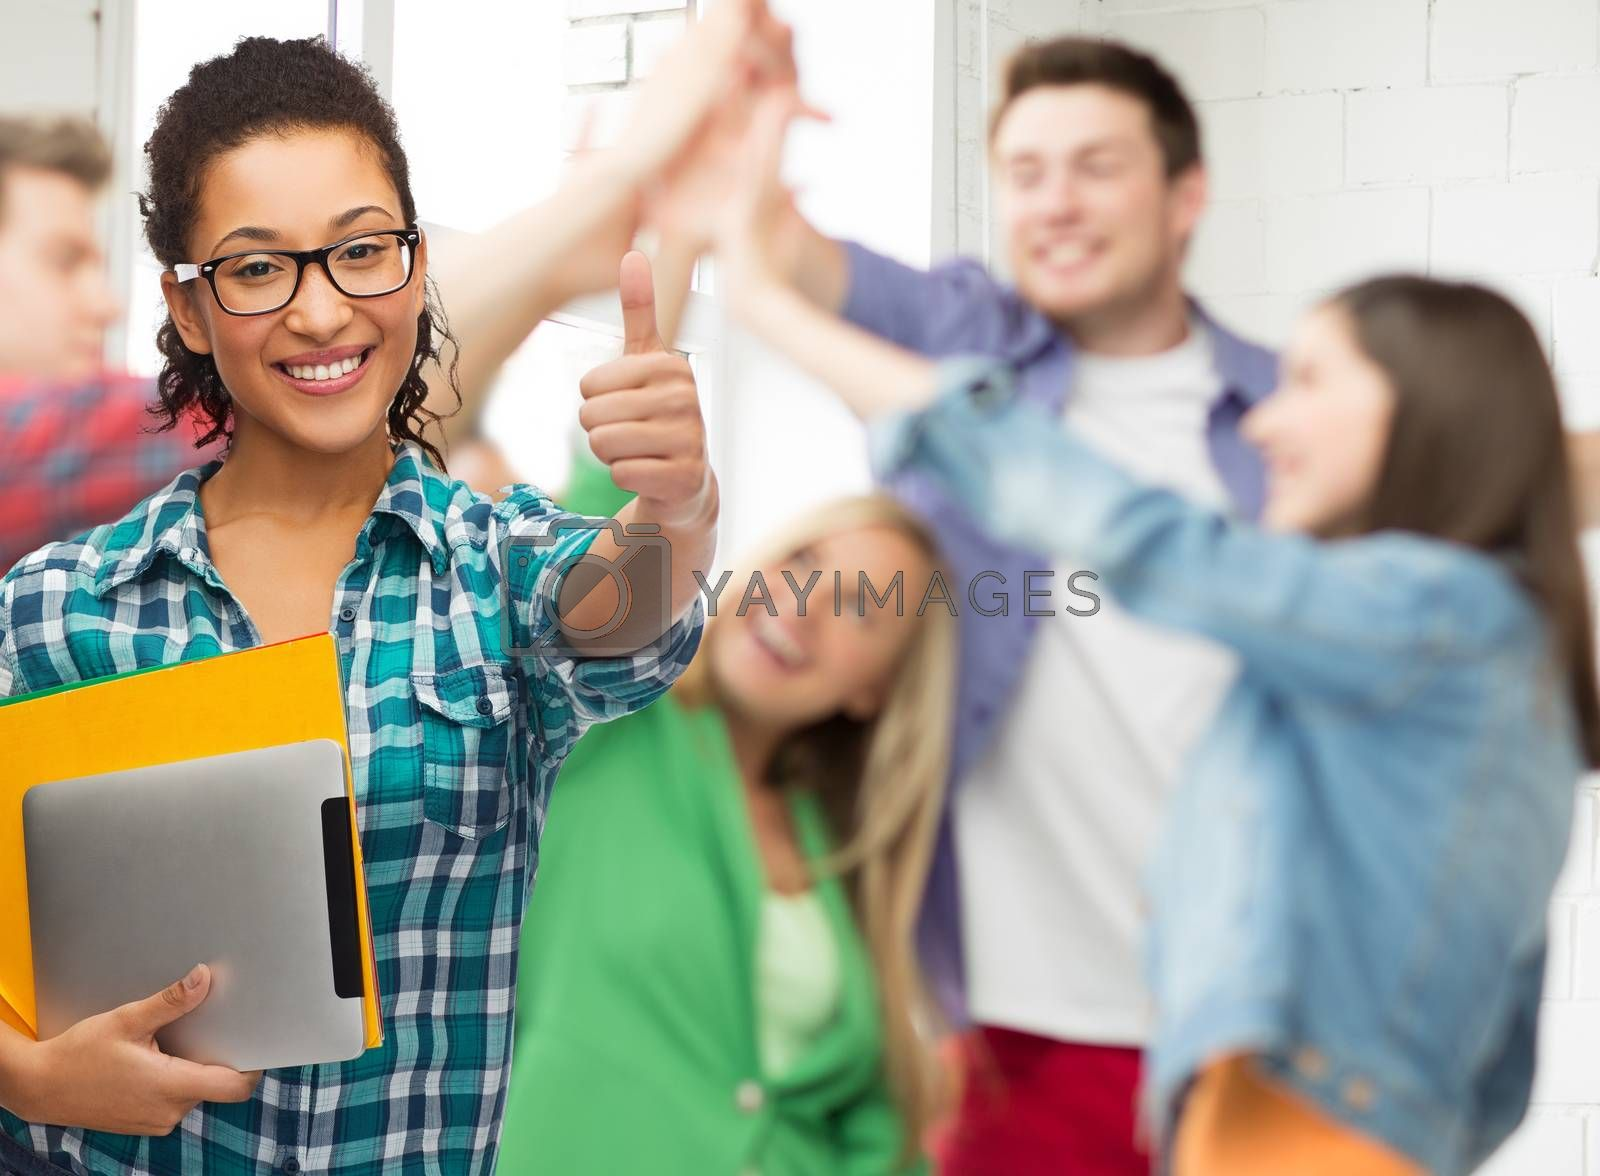 education, technology and people concept - smiling female african american student in eyeglasses with folders and tablet pc at school